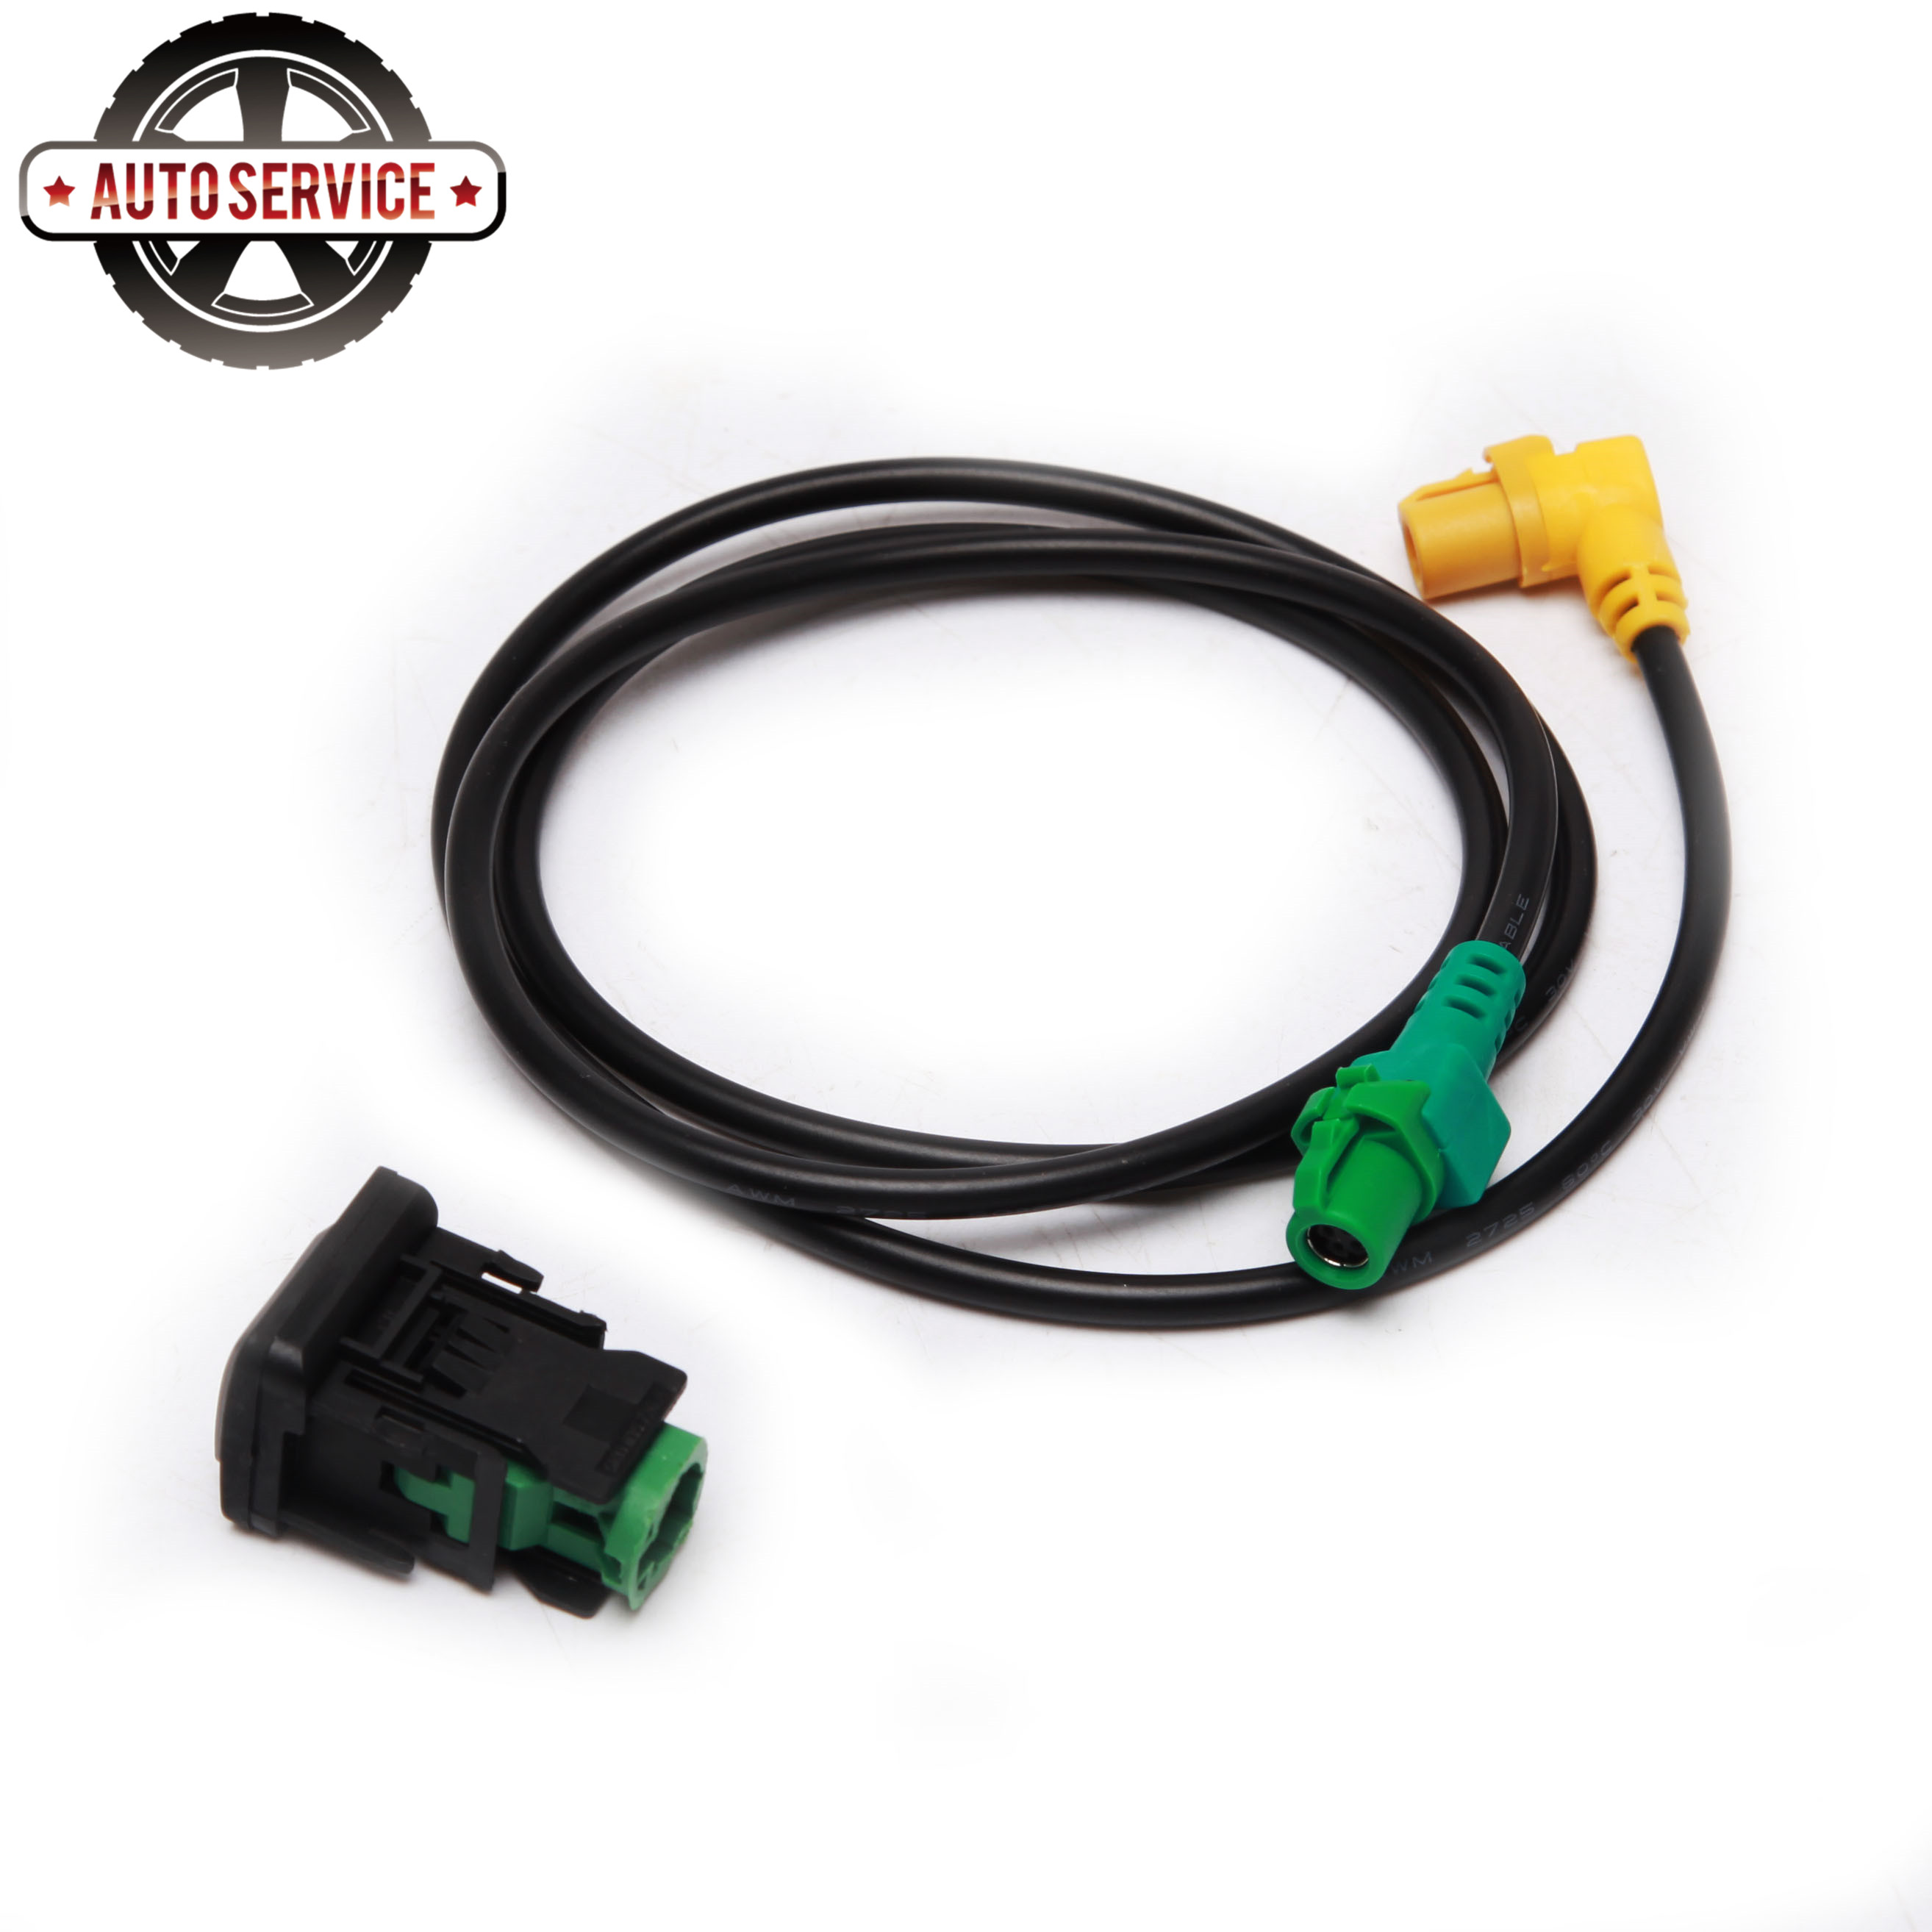 Original 5KD 035 726 A <font><b>USB</b></font> Input <font><b>USB</b></font> Socket <font><b>Adapter</b></font> & Cable Plug For <font><b>VW</b></font> Passat <font><b>Golf</b></font> <font><b>5</b></font>/6 Jetta RCD510 RCD310 RNS315 5KD 035 726 A image